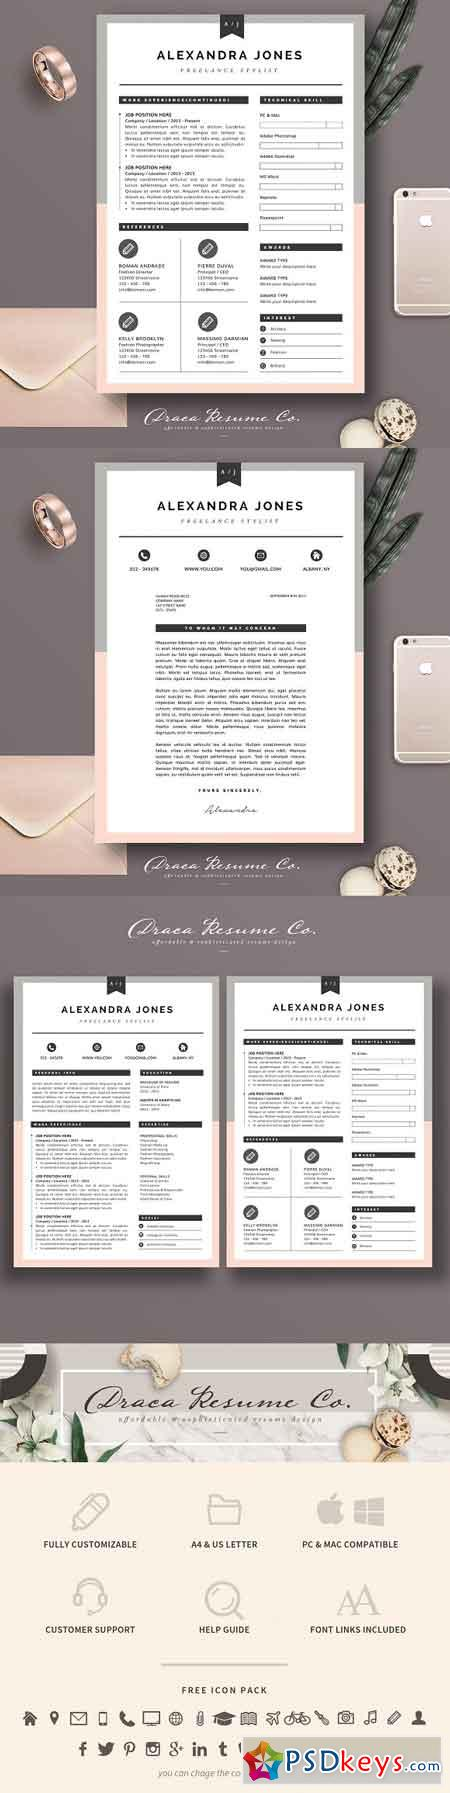 Resume Template 3 page pack AJ 1824769